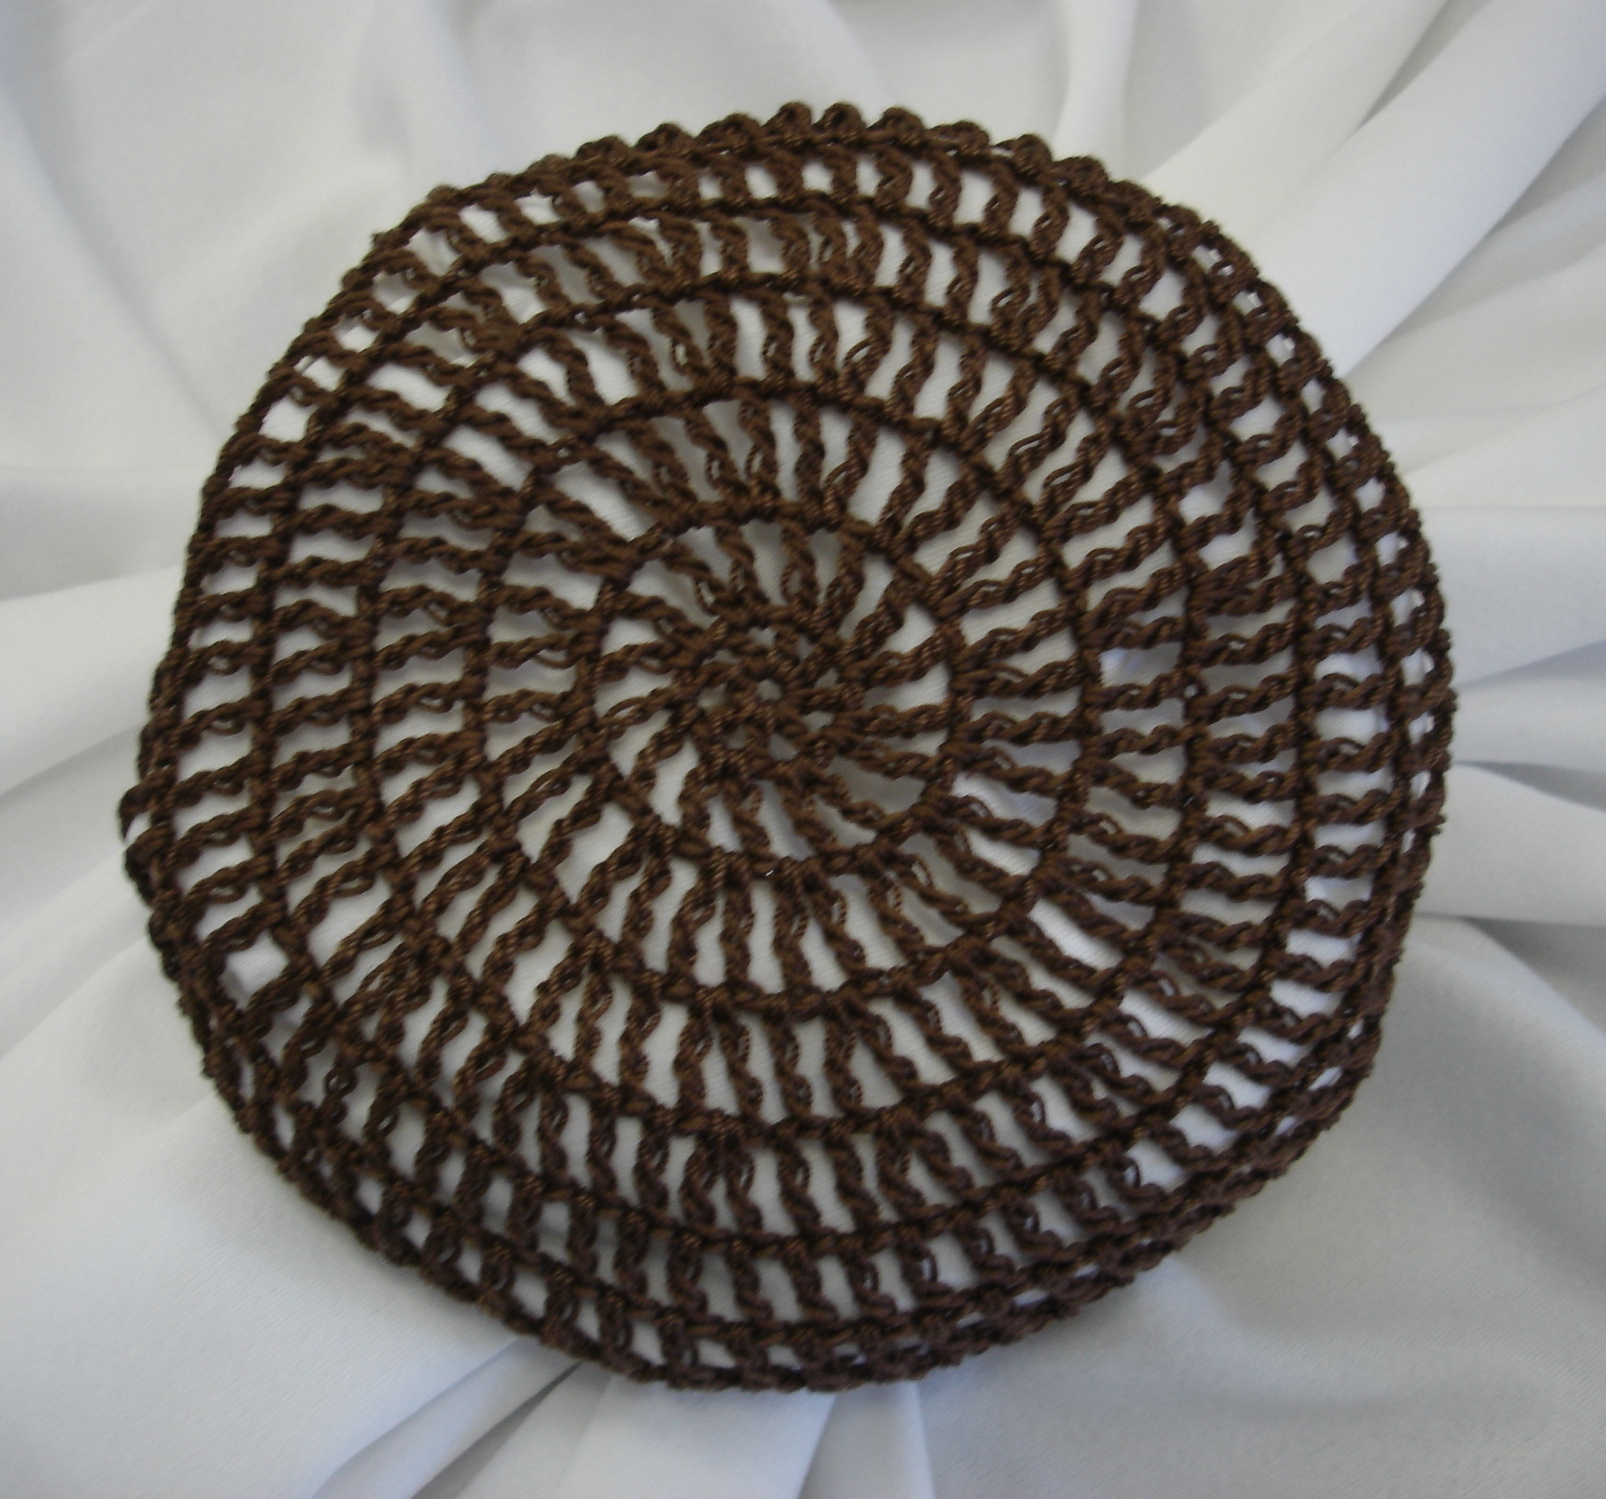 Crochet Net : Crocheted Traditional Hair Nets / Bun Covers Amish Mennonite